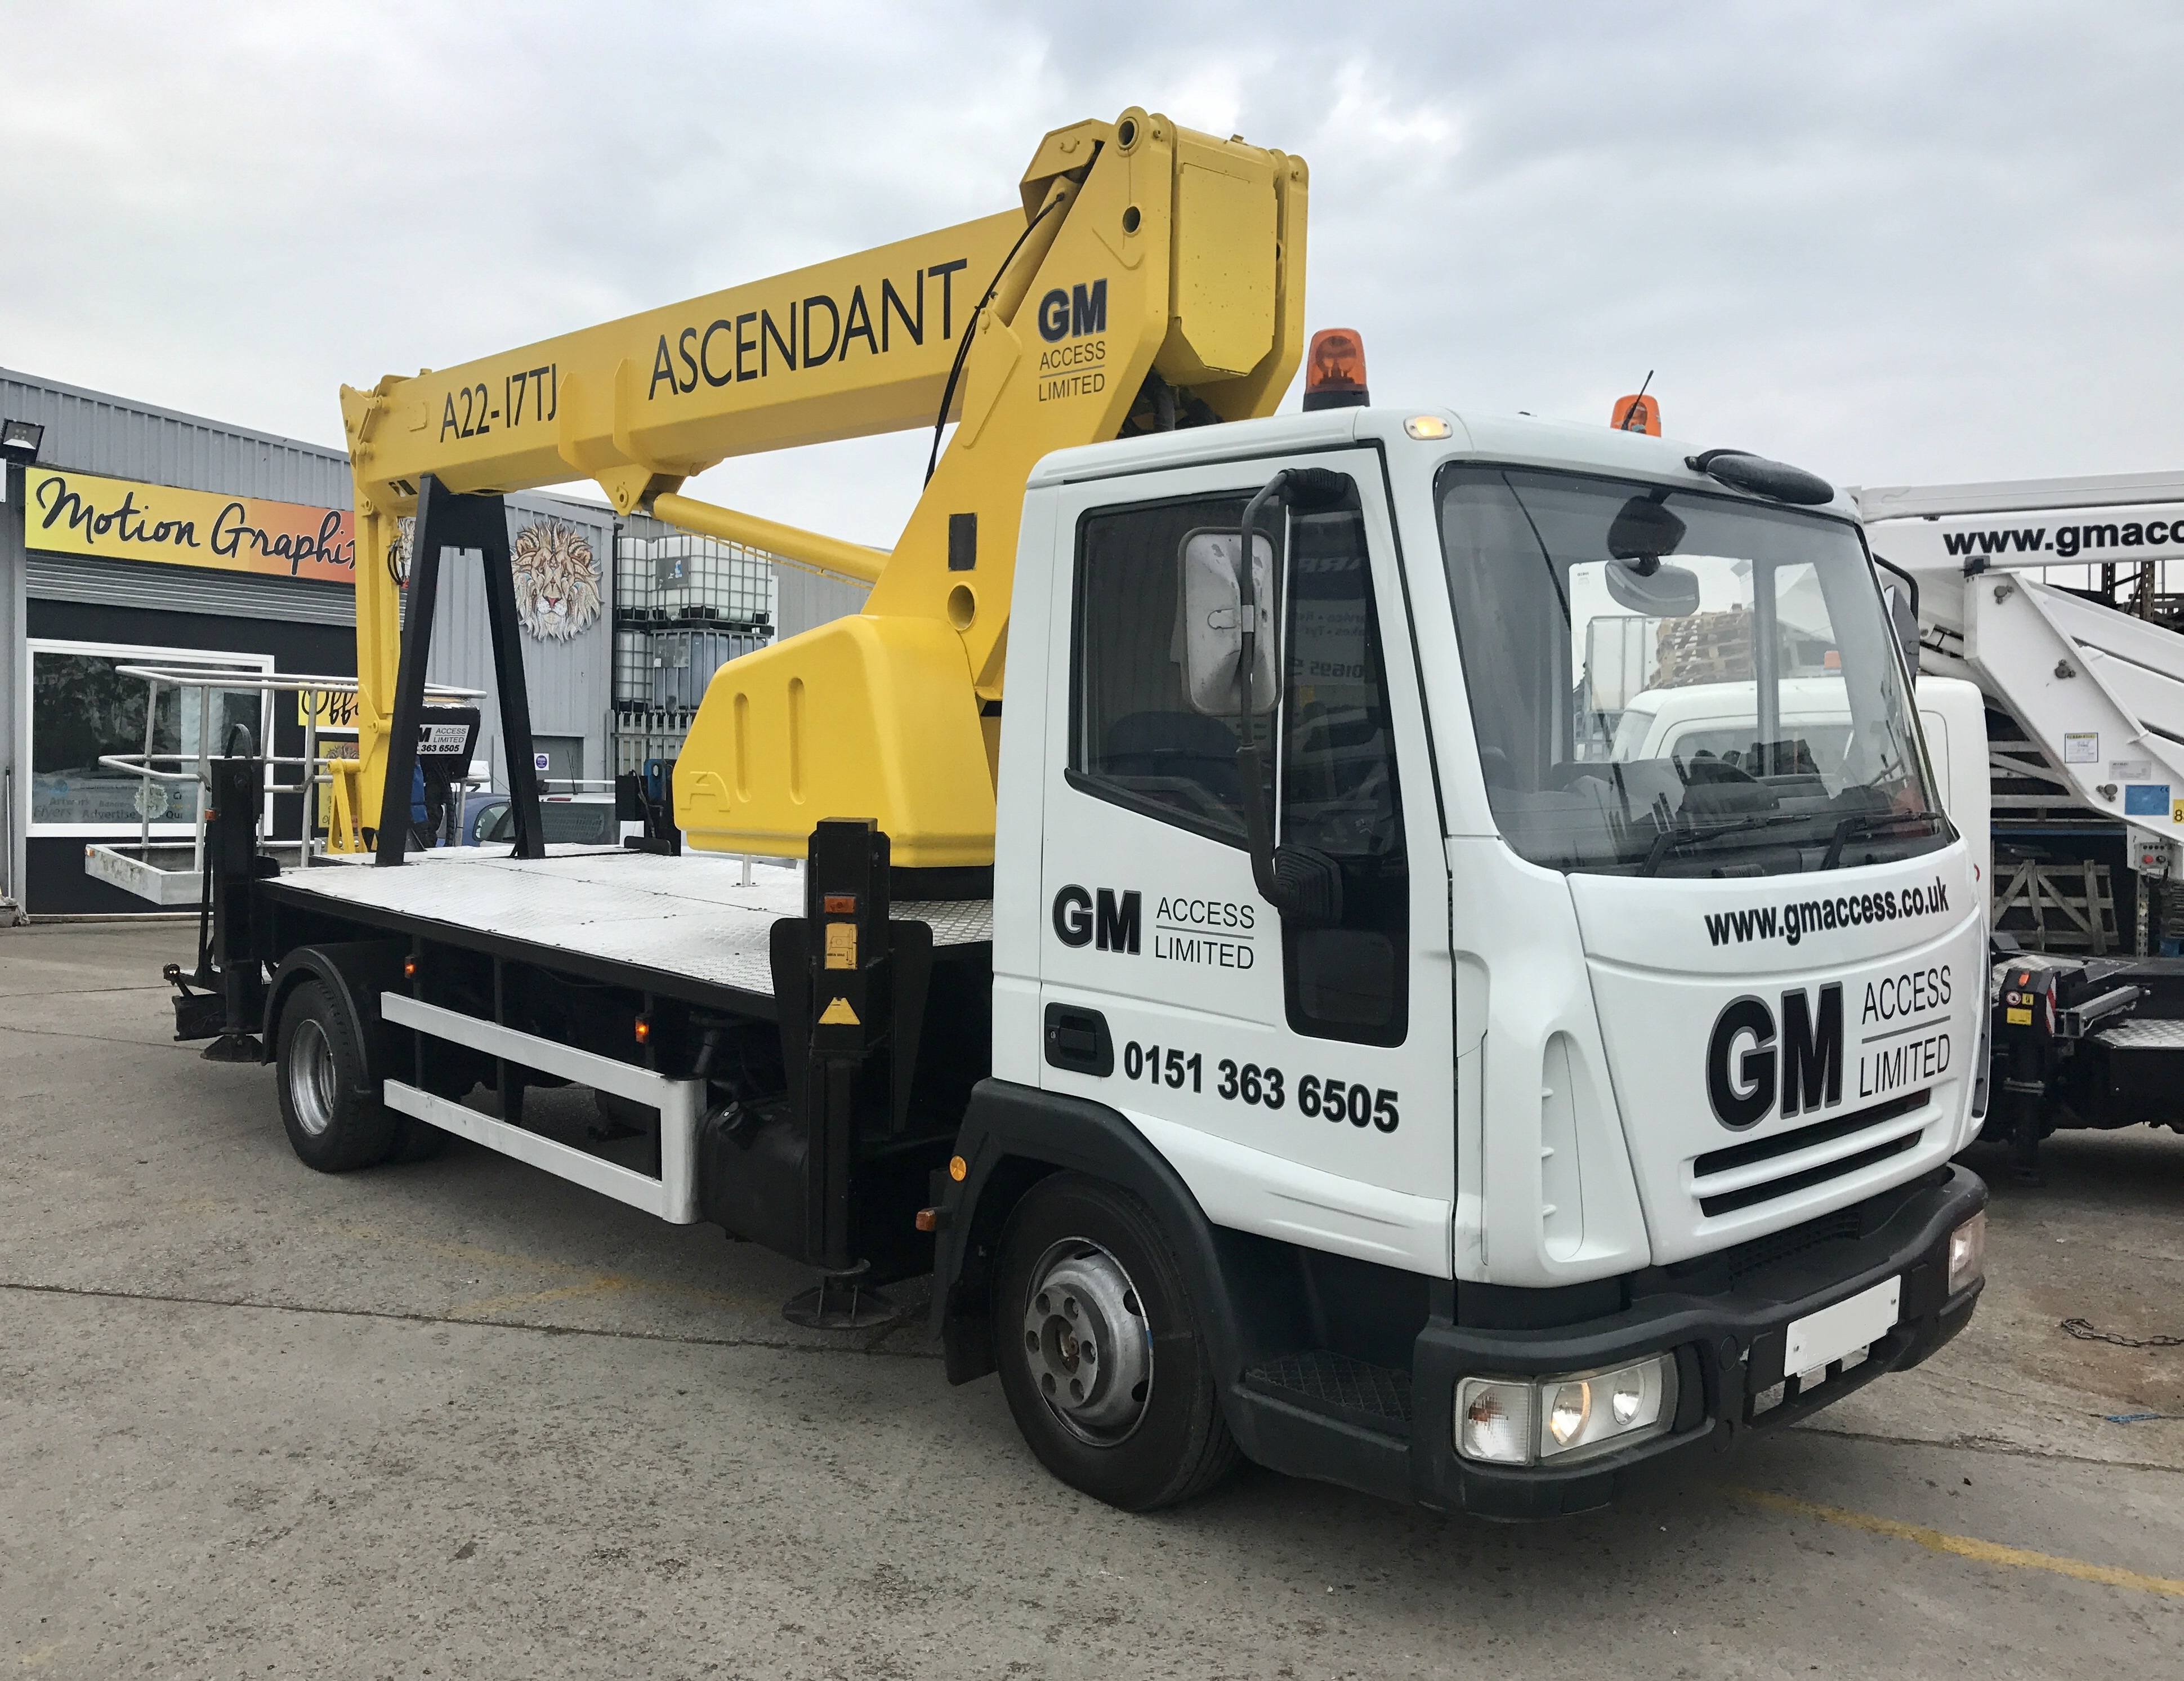 Ascendant 22m - GM Access NW Limited